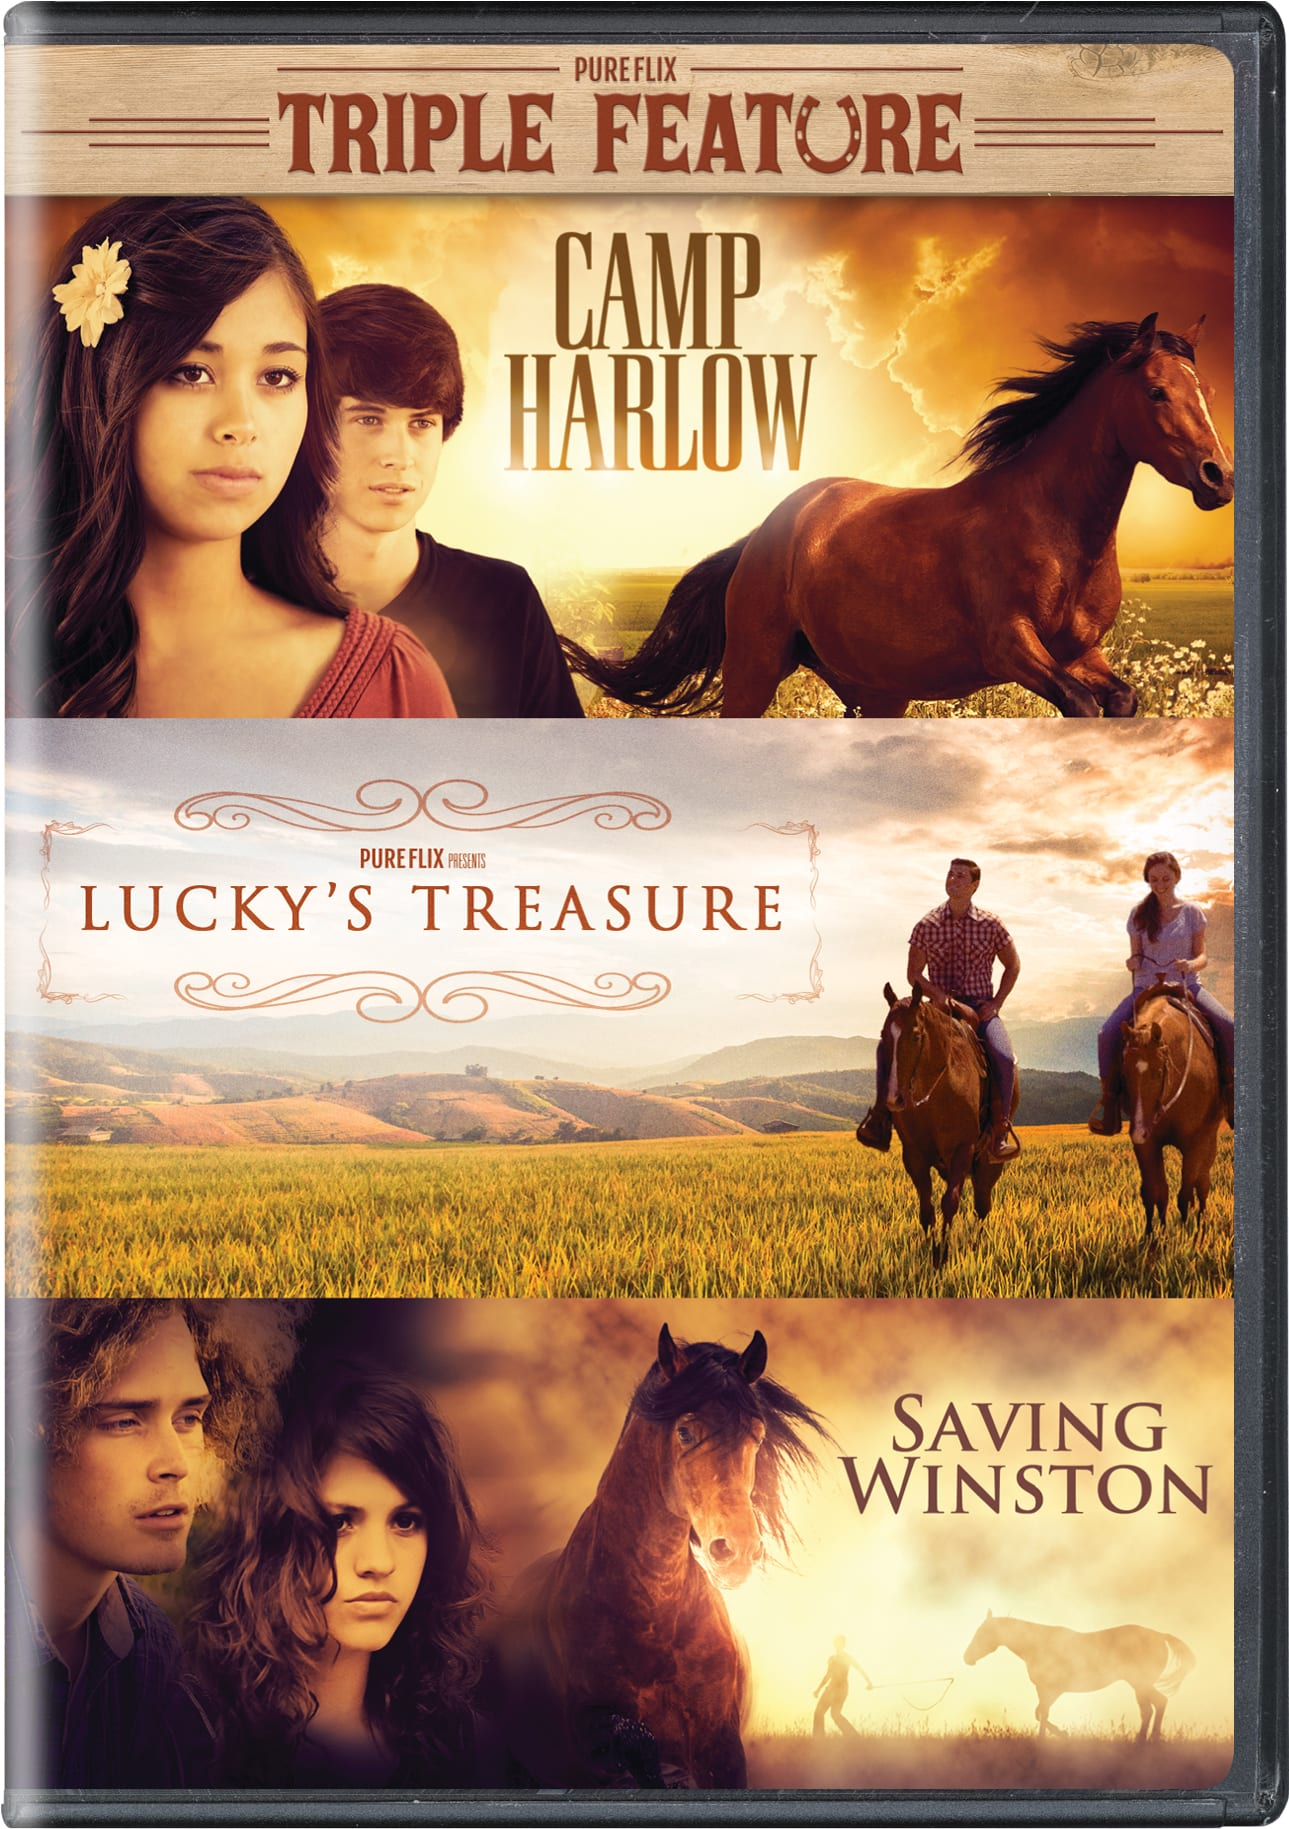 Camp Harlow/Lucky's Treasure/Saving Winston (Box Set) [DVD]